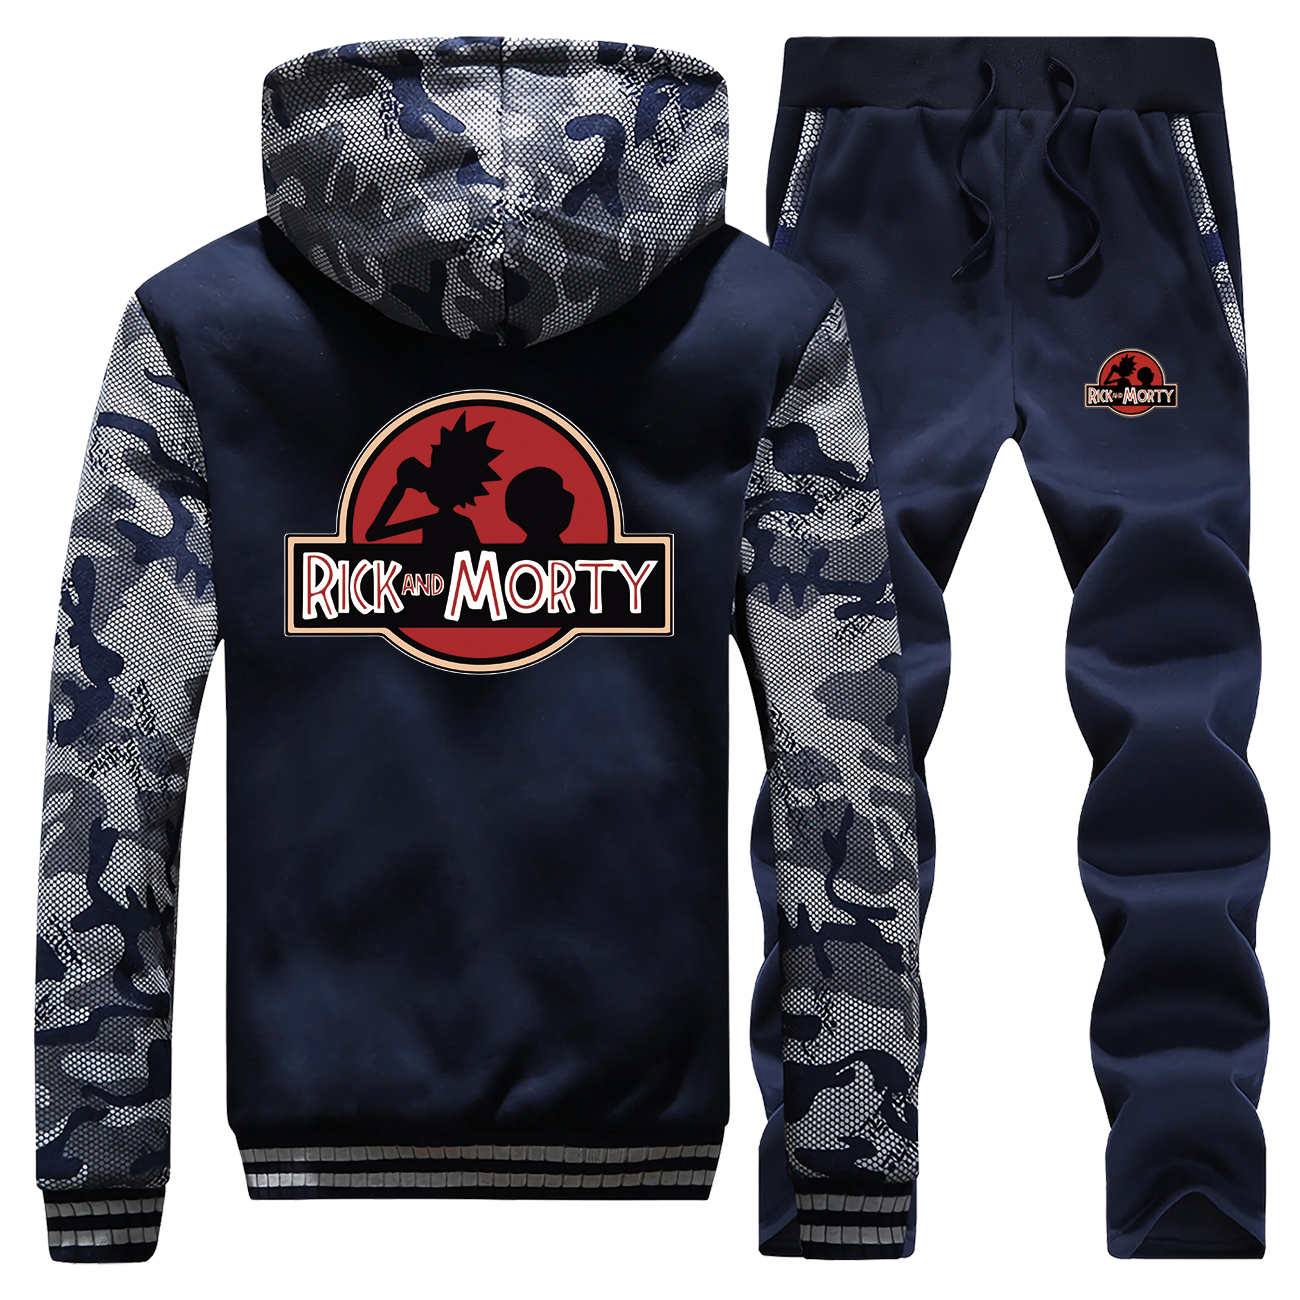 Rick And Morty Anime Funny Print Camo Men Hoodie 2019 Winter Male Set Warm Fashion Jacket Thick Camouflage Fleece Sportsman Wear